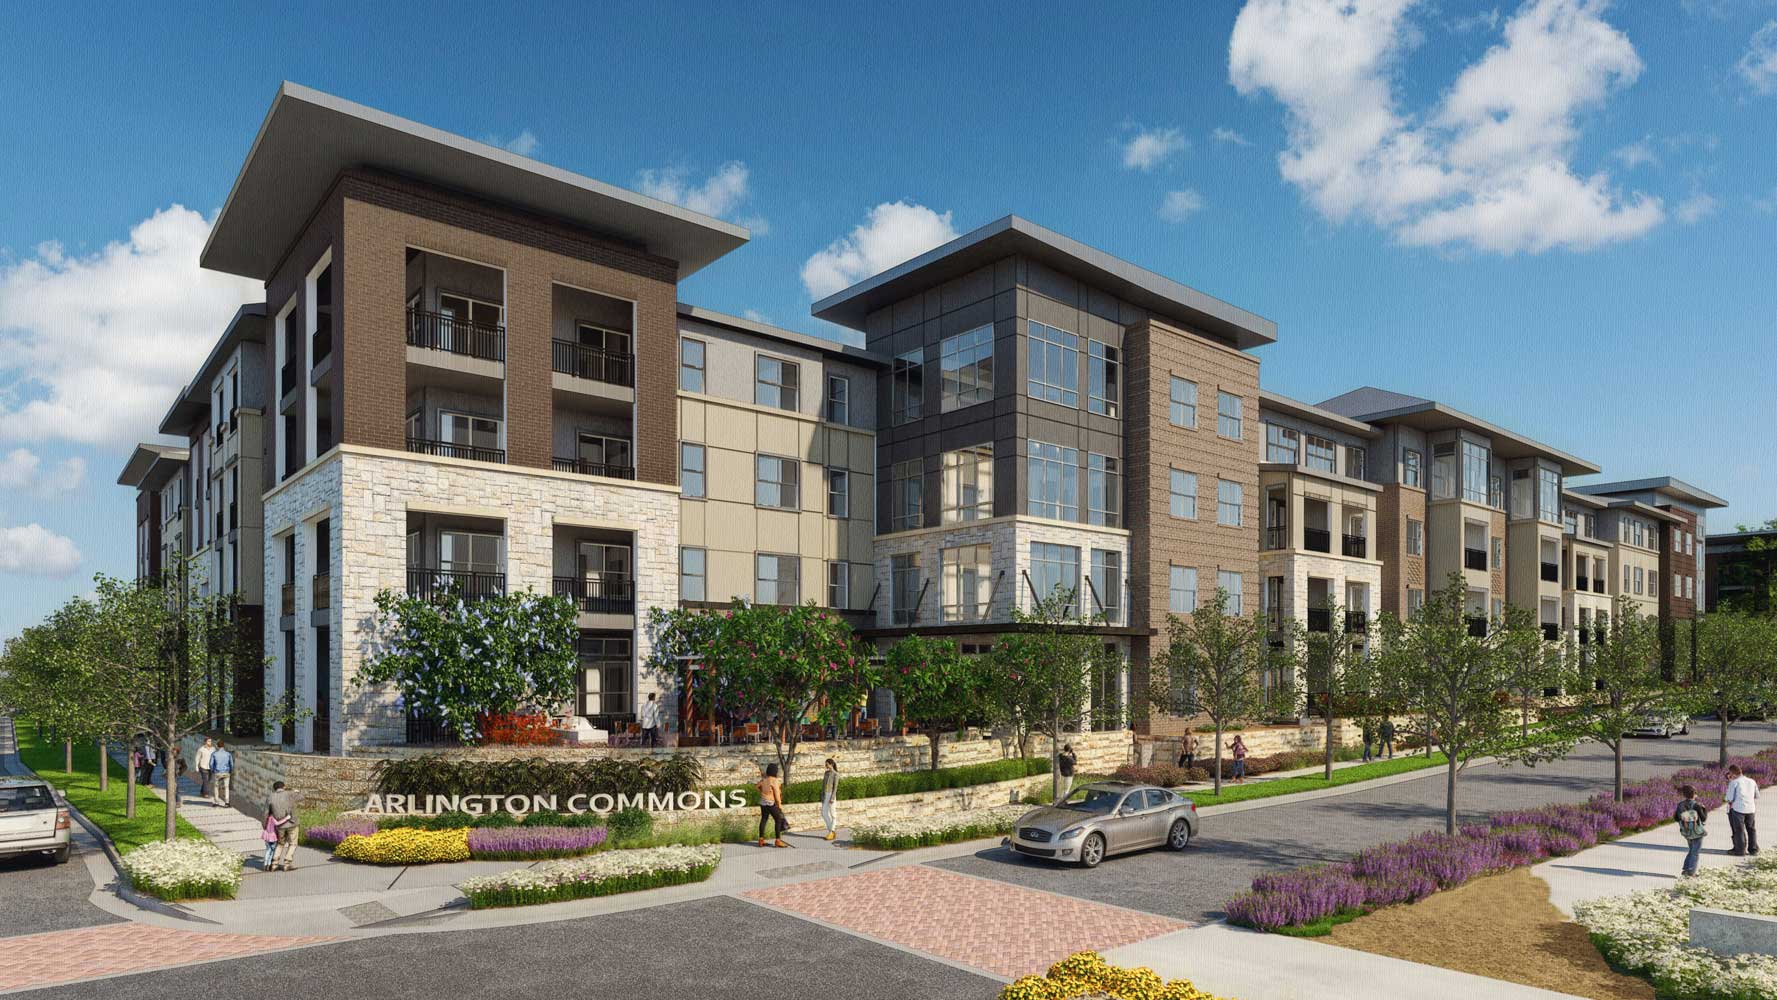 Apartments for Lease at The Truman Arlington Commons in Arlington, Texas